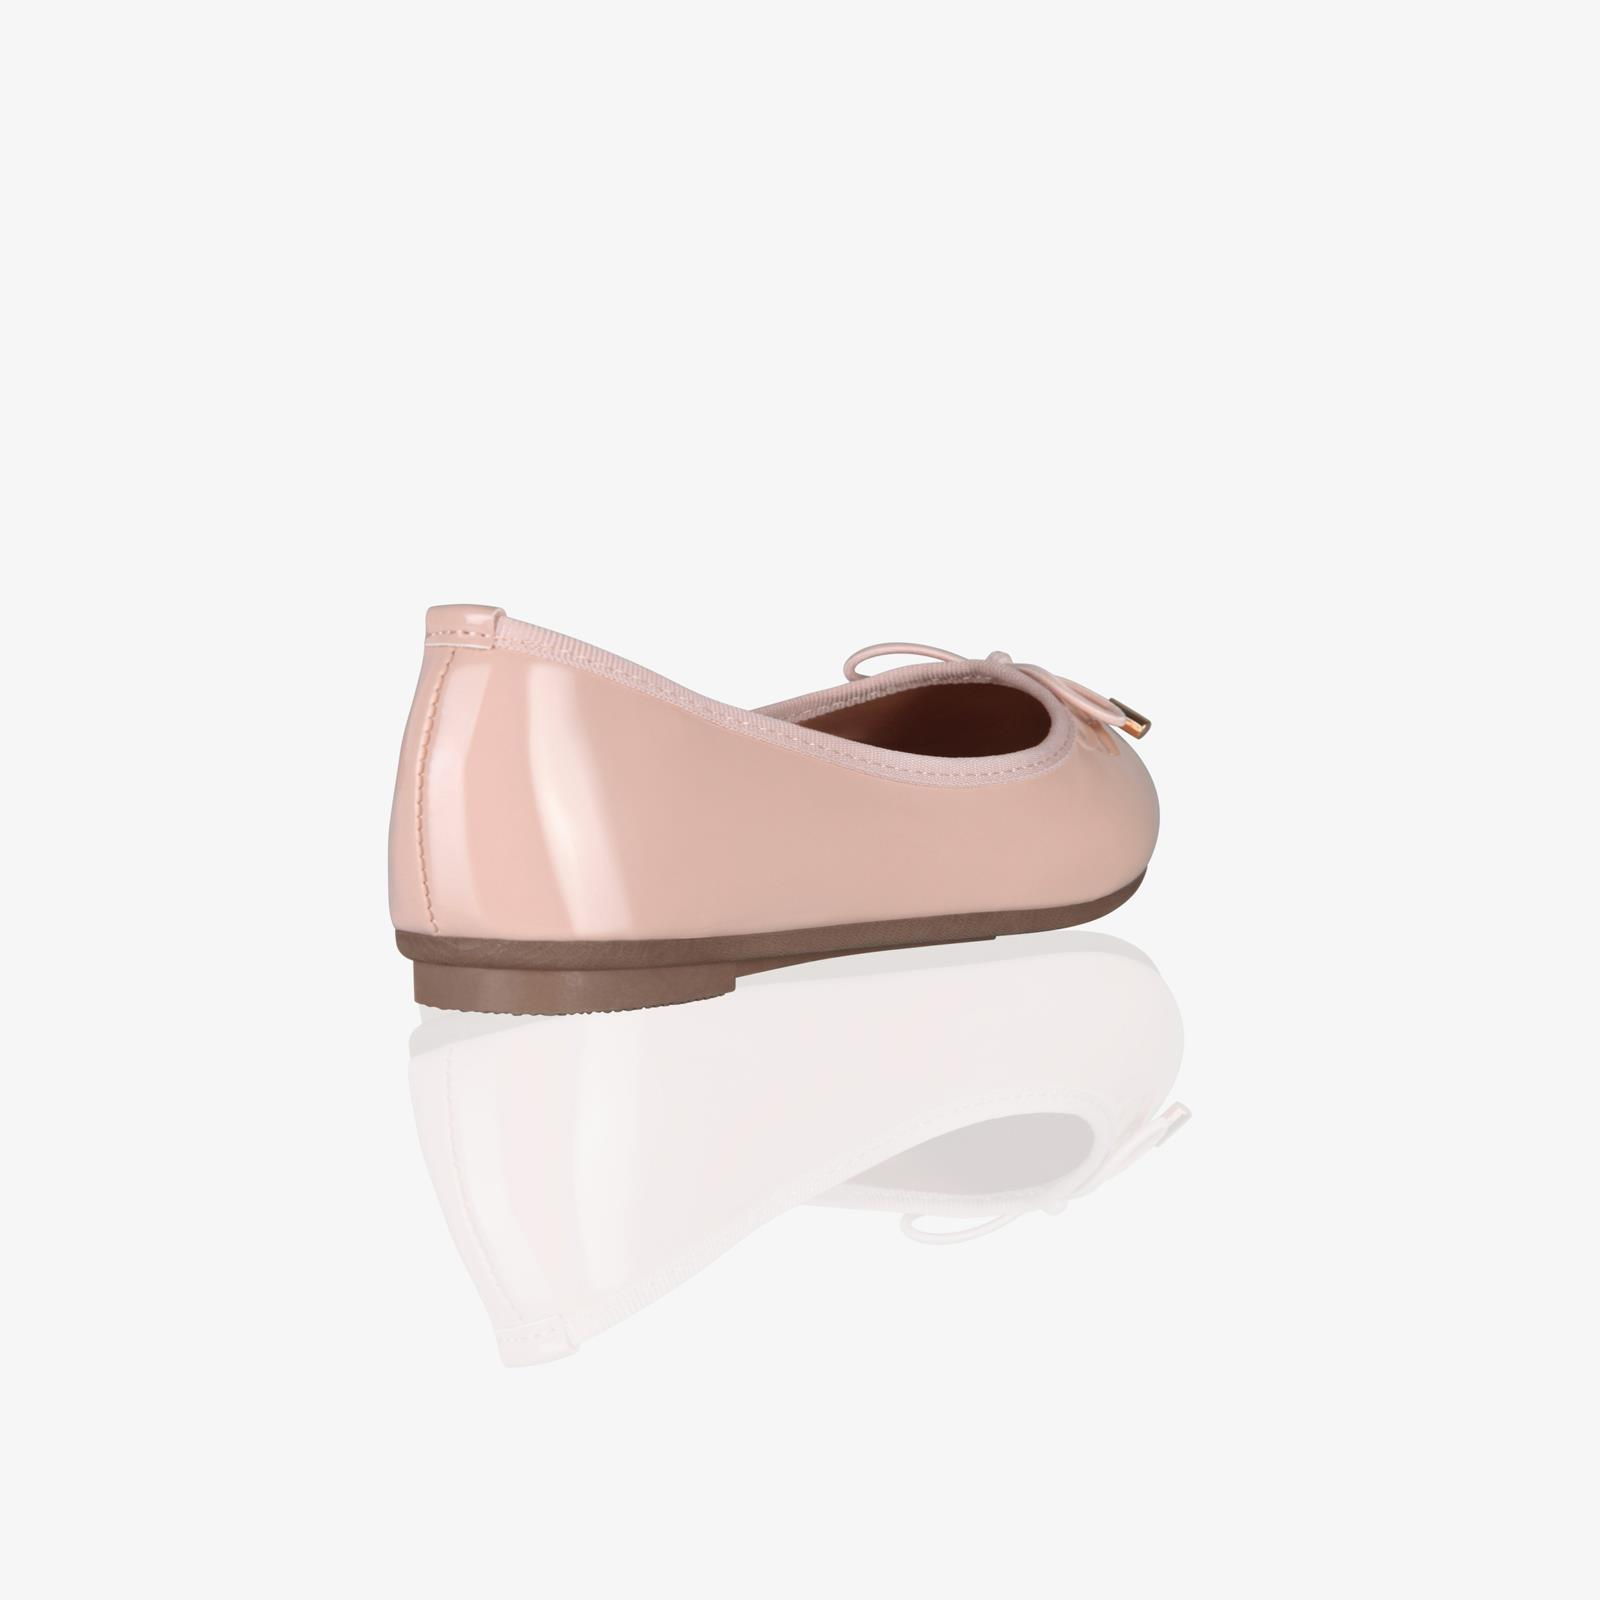 Womens-Ladies-Patent-Flat-Shoes-Ballerina-Ballet-Dolly-Court-Pumps-Slip-On-Bow thumbnail 10